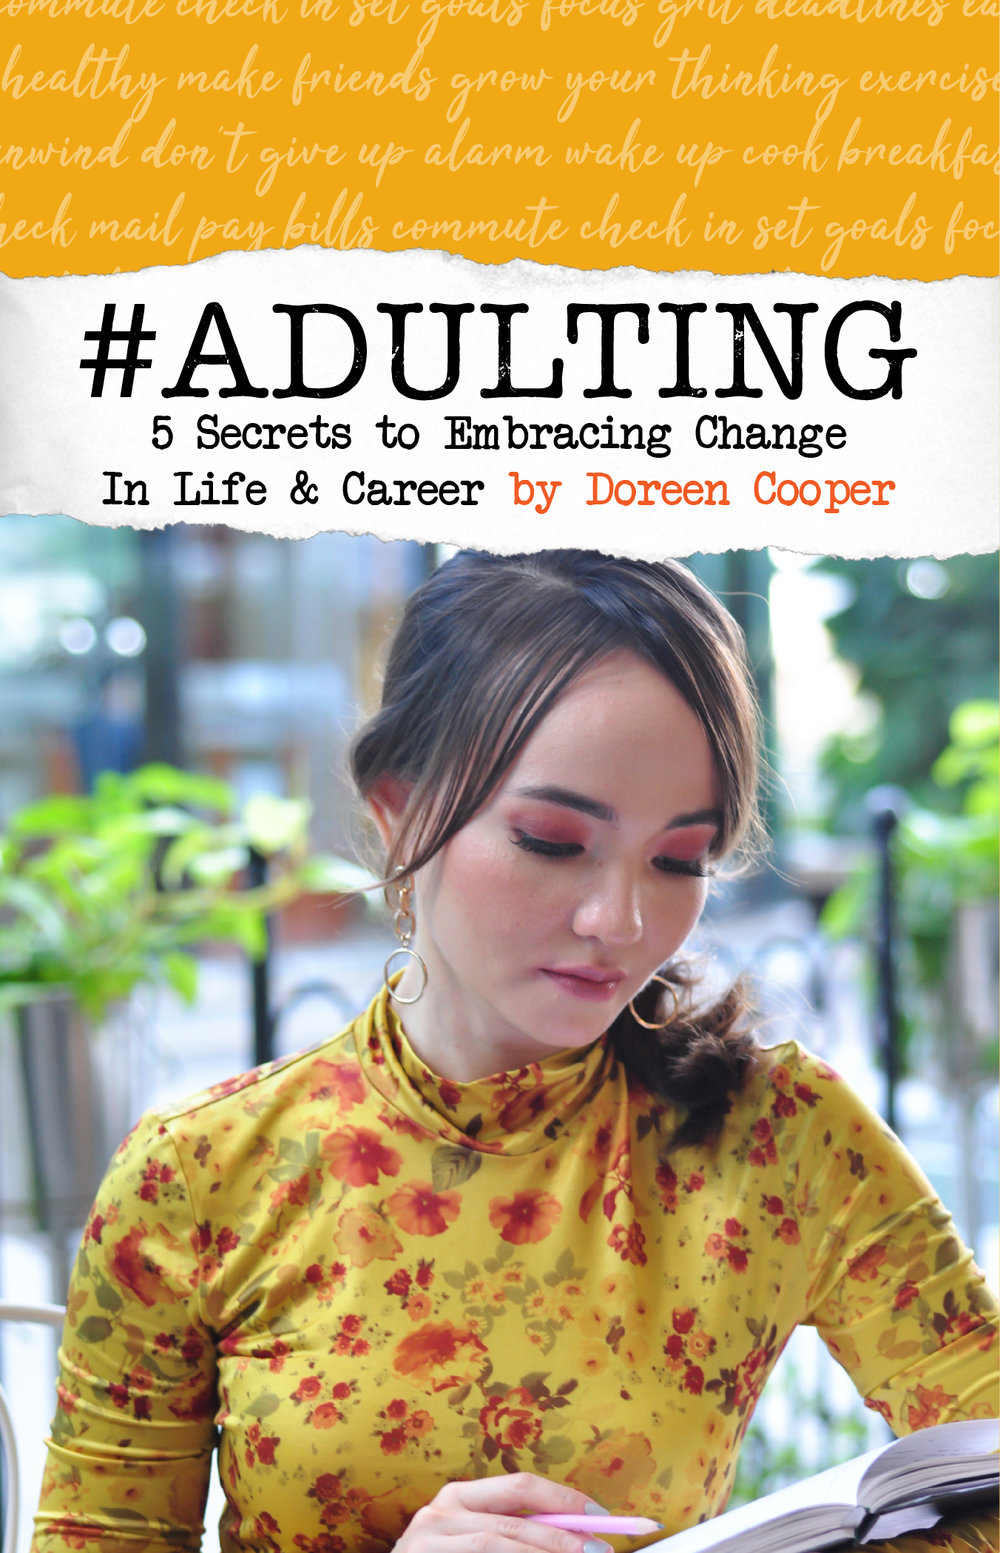 Adulting Front-01.jpg